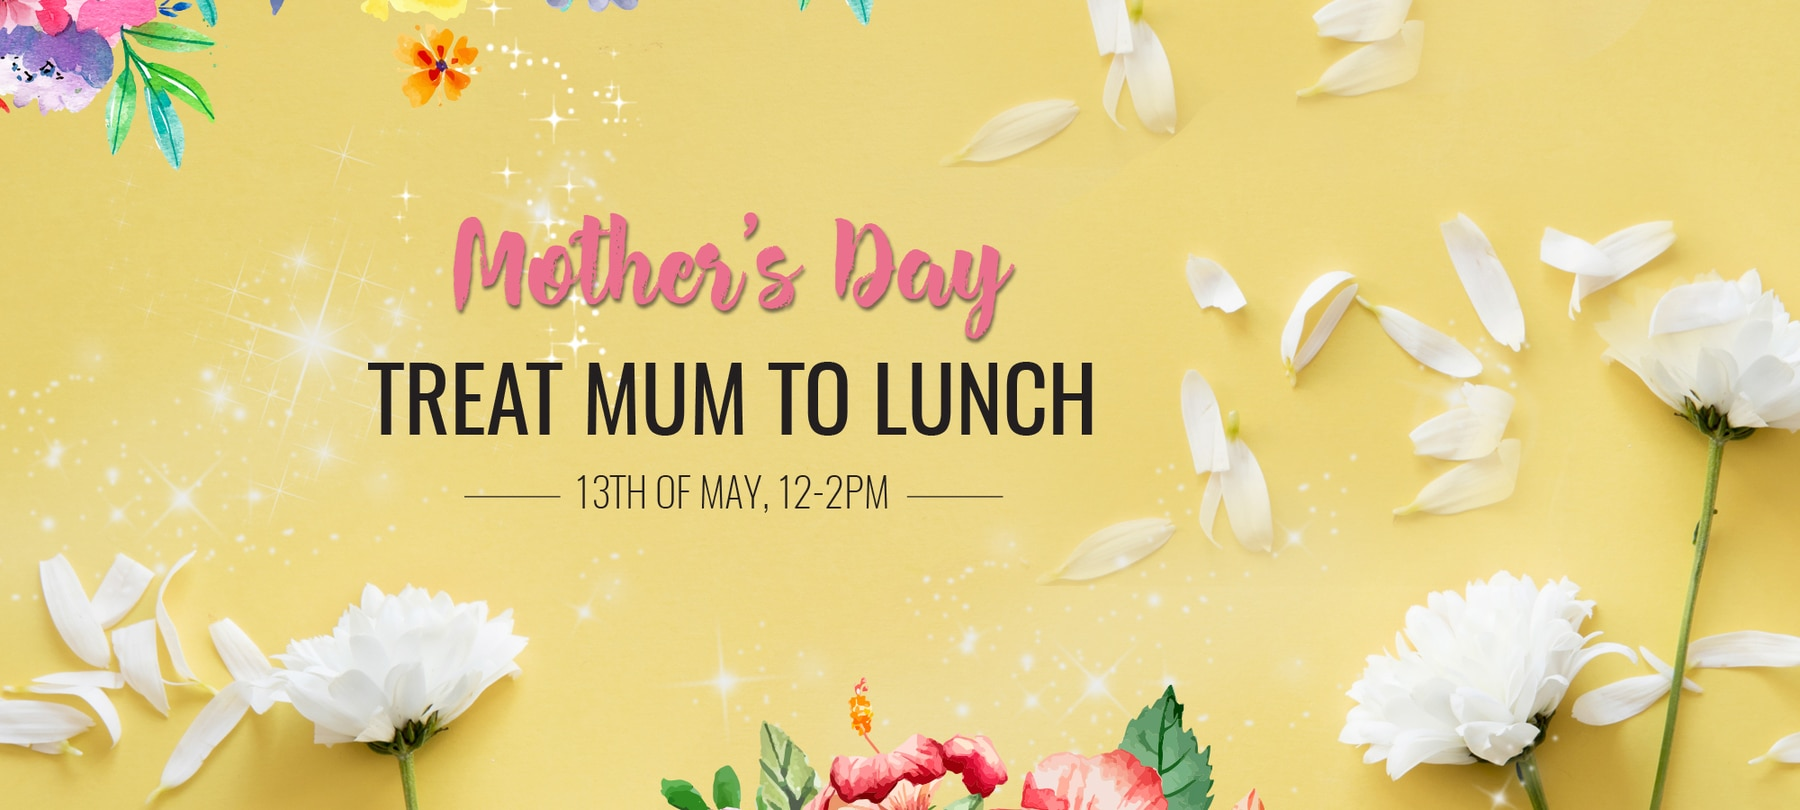 Mothers Day At Trinity Beach Sports Club